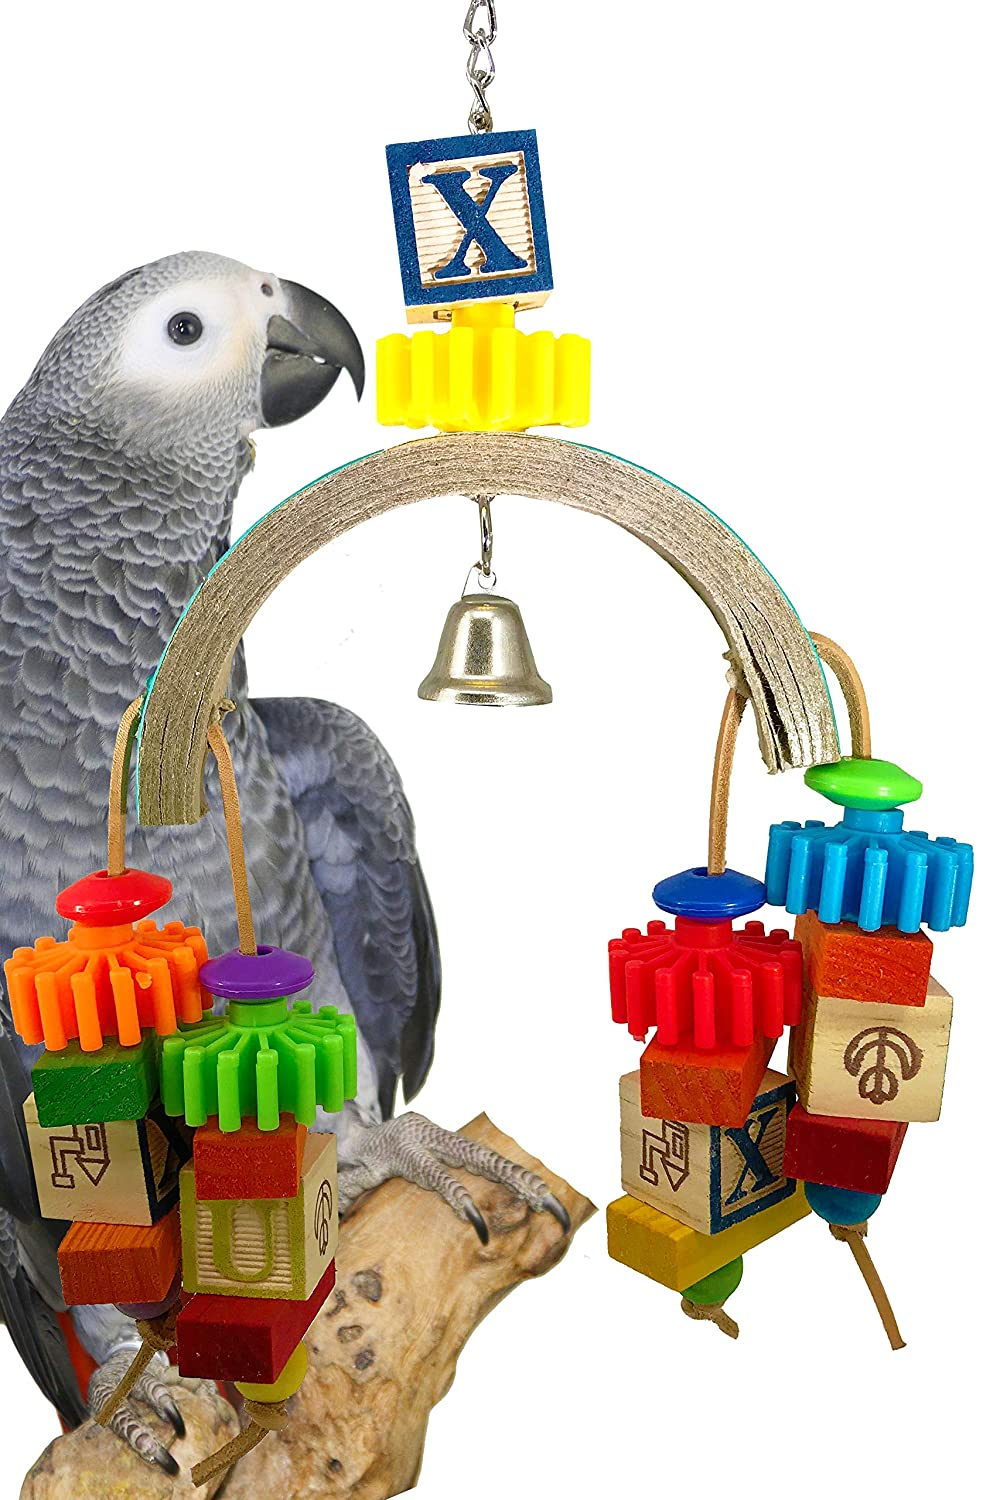 Bonka Bird Toys 1640 ABC Gear Bird Toy Parred cage Toys Cages Foraging African Grey Amazon.